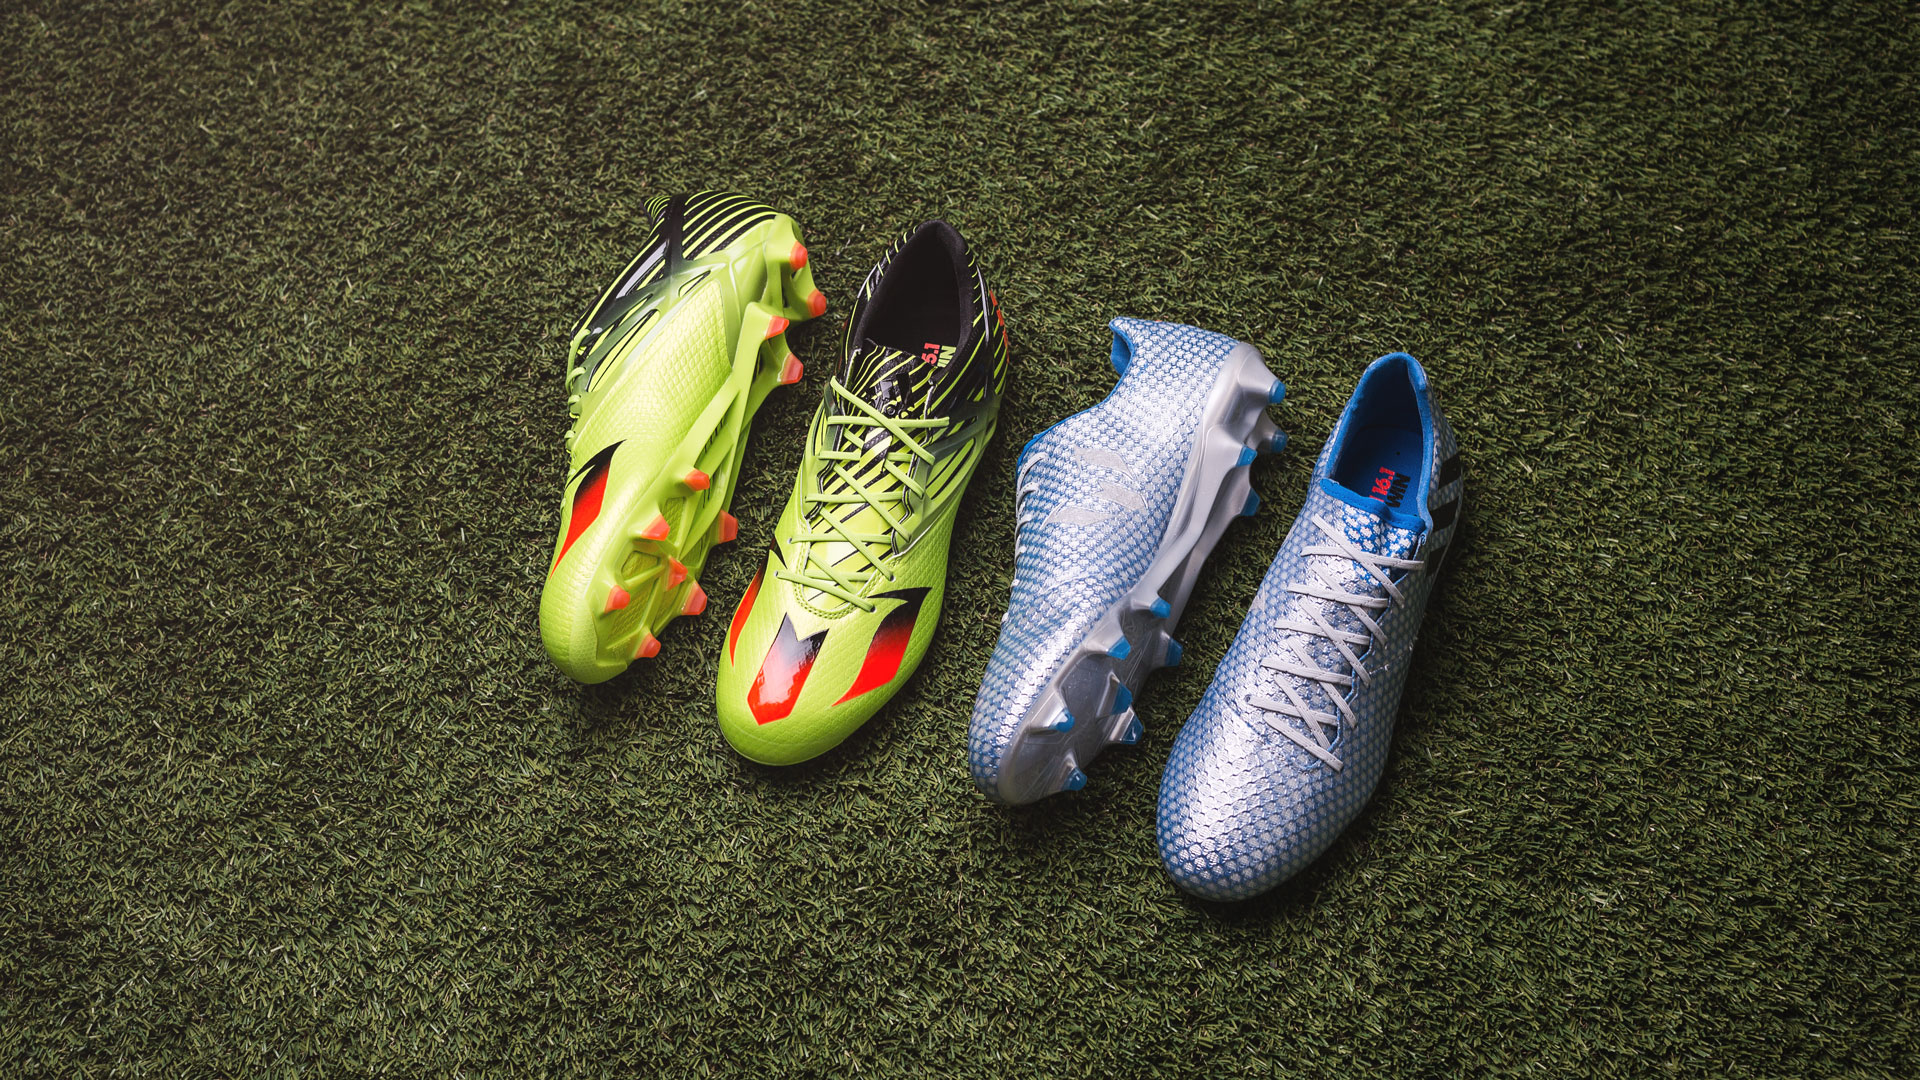 0c85b8146b9 Is the adidas Messi 16.1 an upgrade?